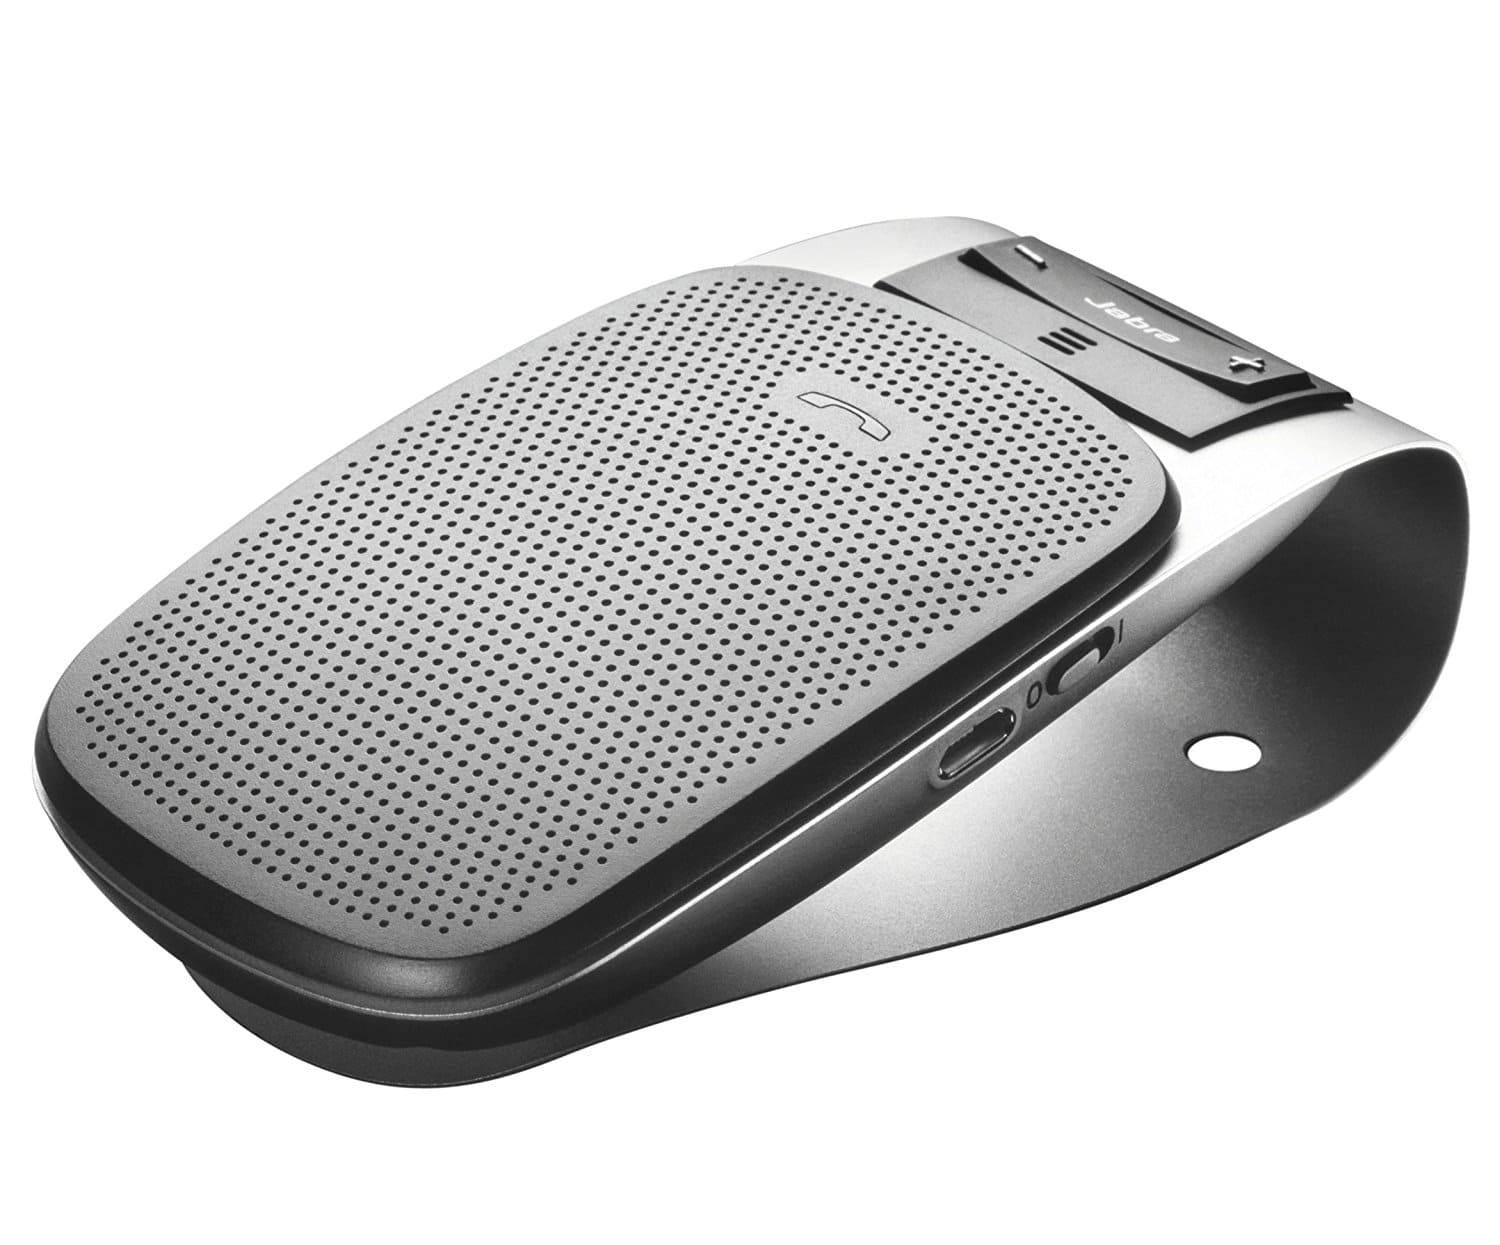 Jabra DRIVE Bluetooth In-Car Wireless Universal Hands Free Speakerphone $21.59 &Free S